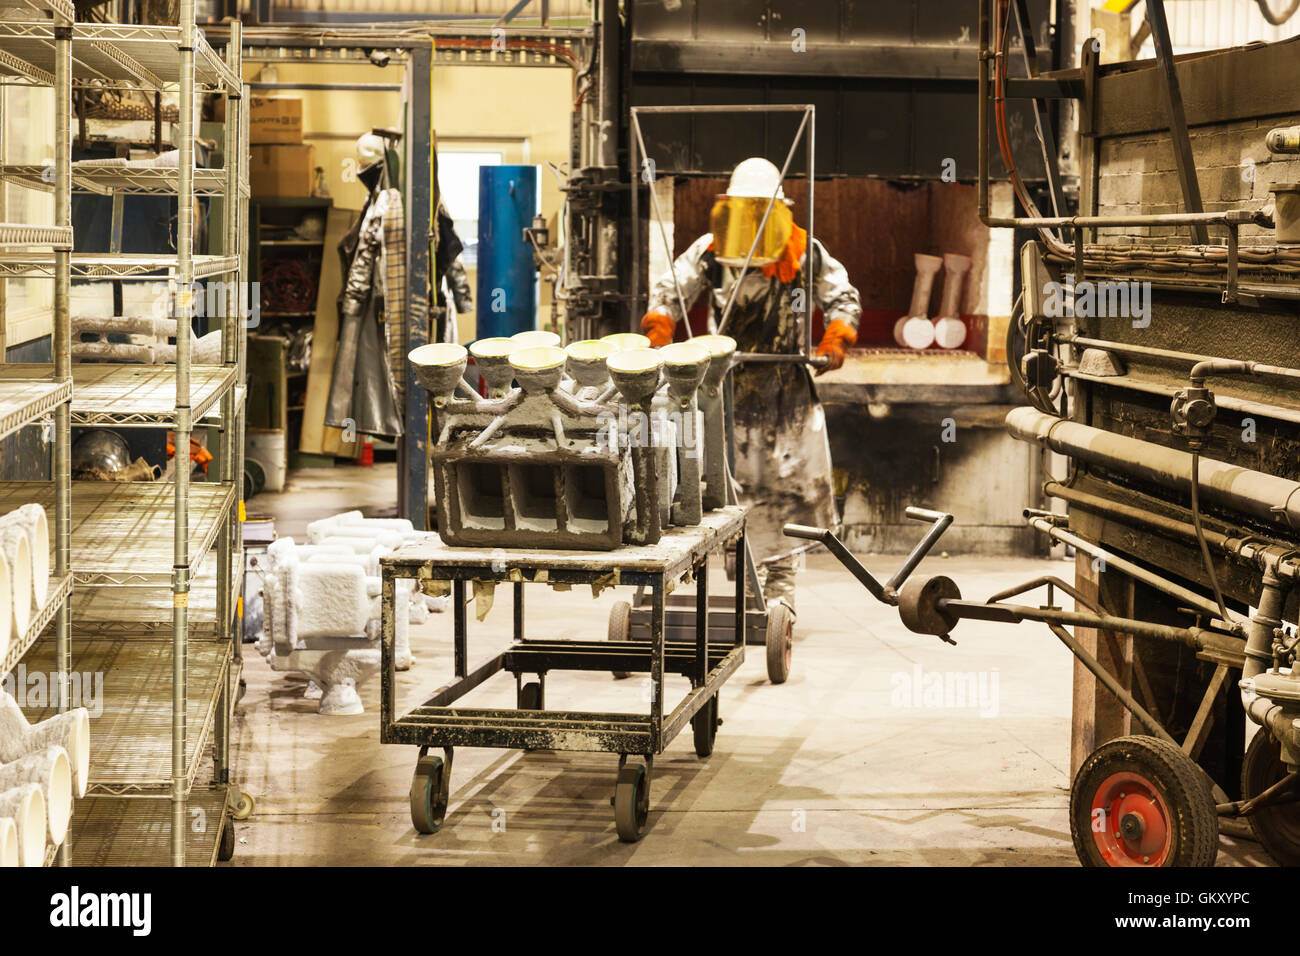 workmen in safety wear cutting, grinding metal parts for further processing manufacturing component parts for assembly - Stock Image